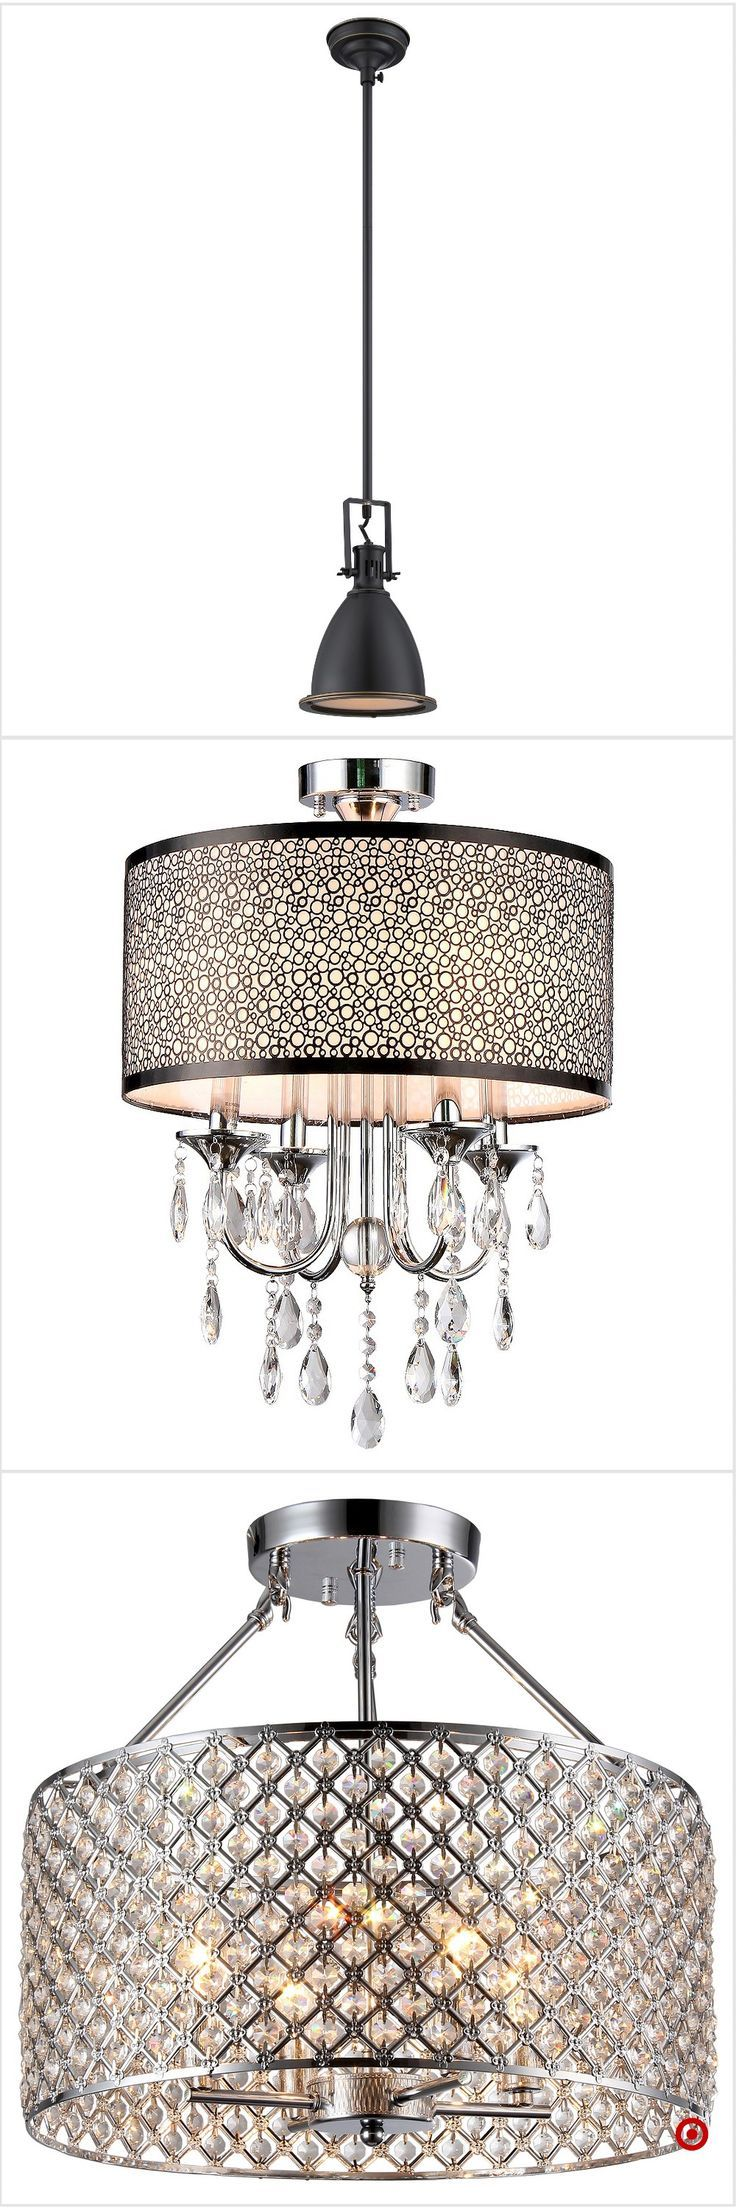 induction lighting pros and cons. Shop Target For Ceiling Lights You Will Love At Great Low Prices. Free Shipping On Induction Lighting Pros And Cons